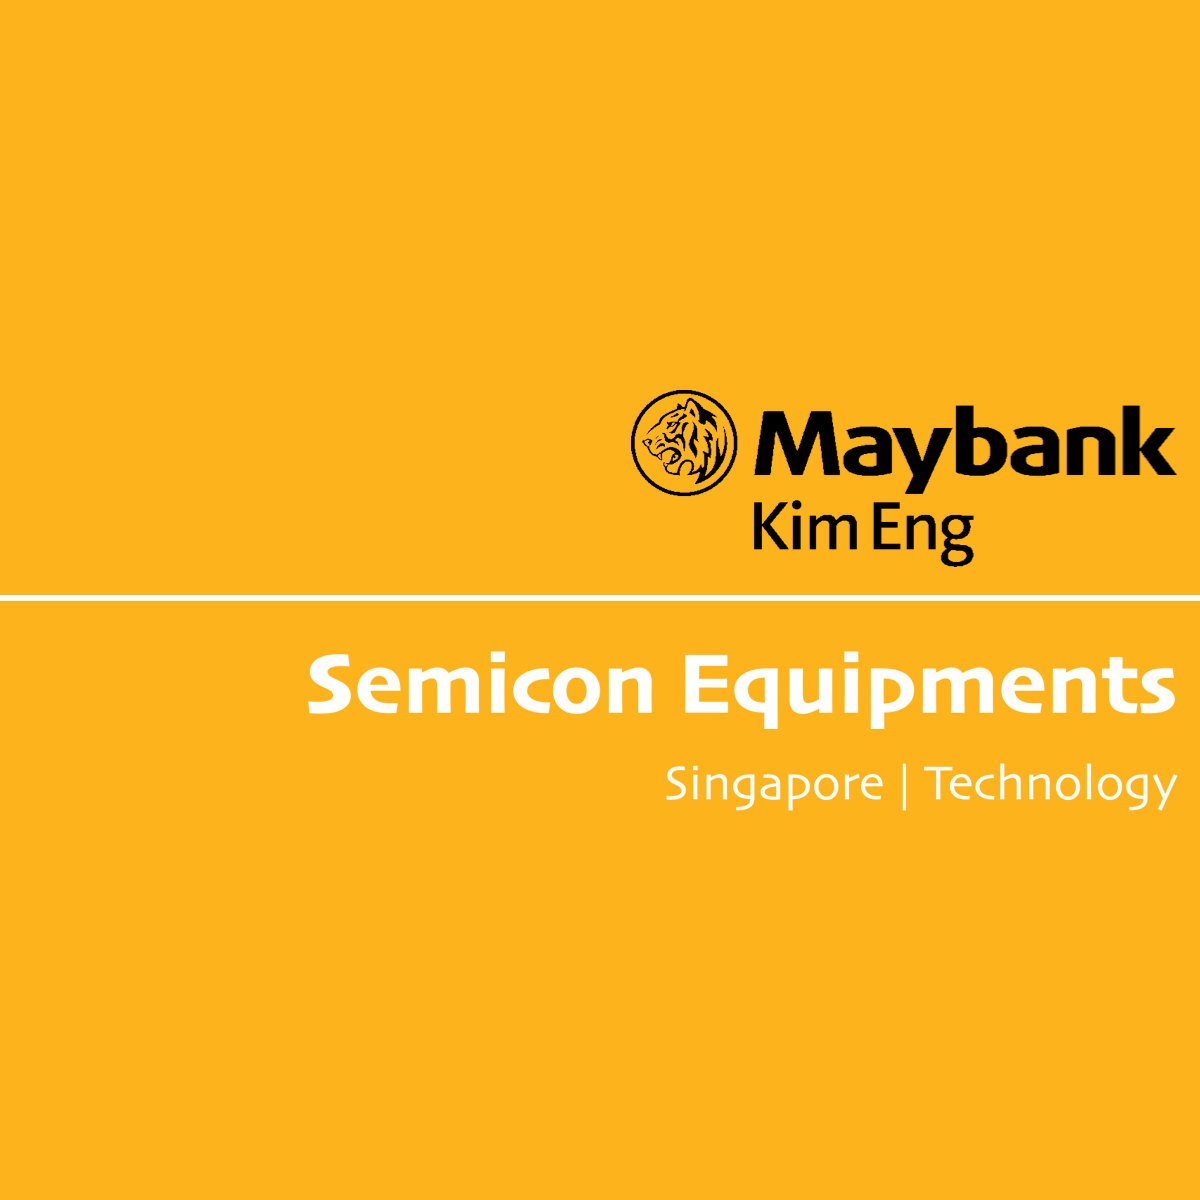 Singapore Semicon Equipment - Maybank Kim Eng Research | SGinvestors.io